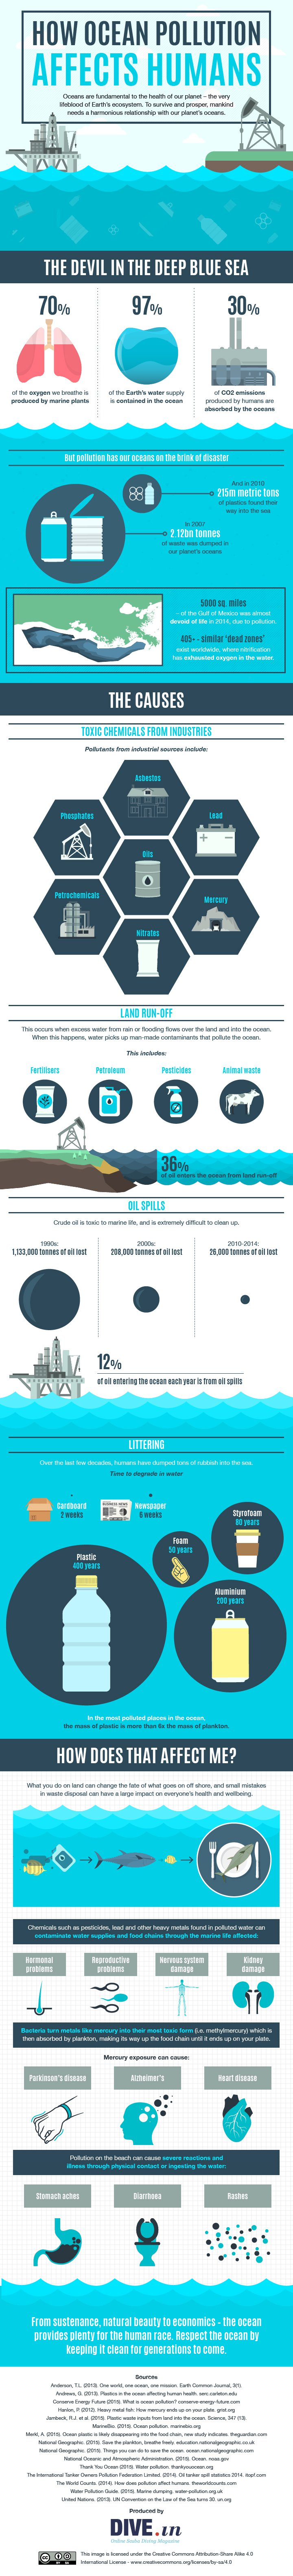 How Ocean Pollution Affects Humans Inforaphic